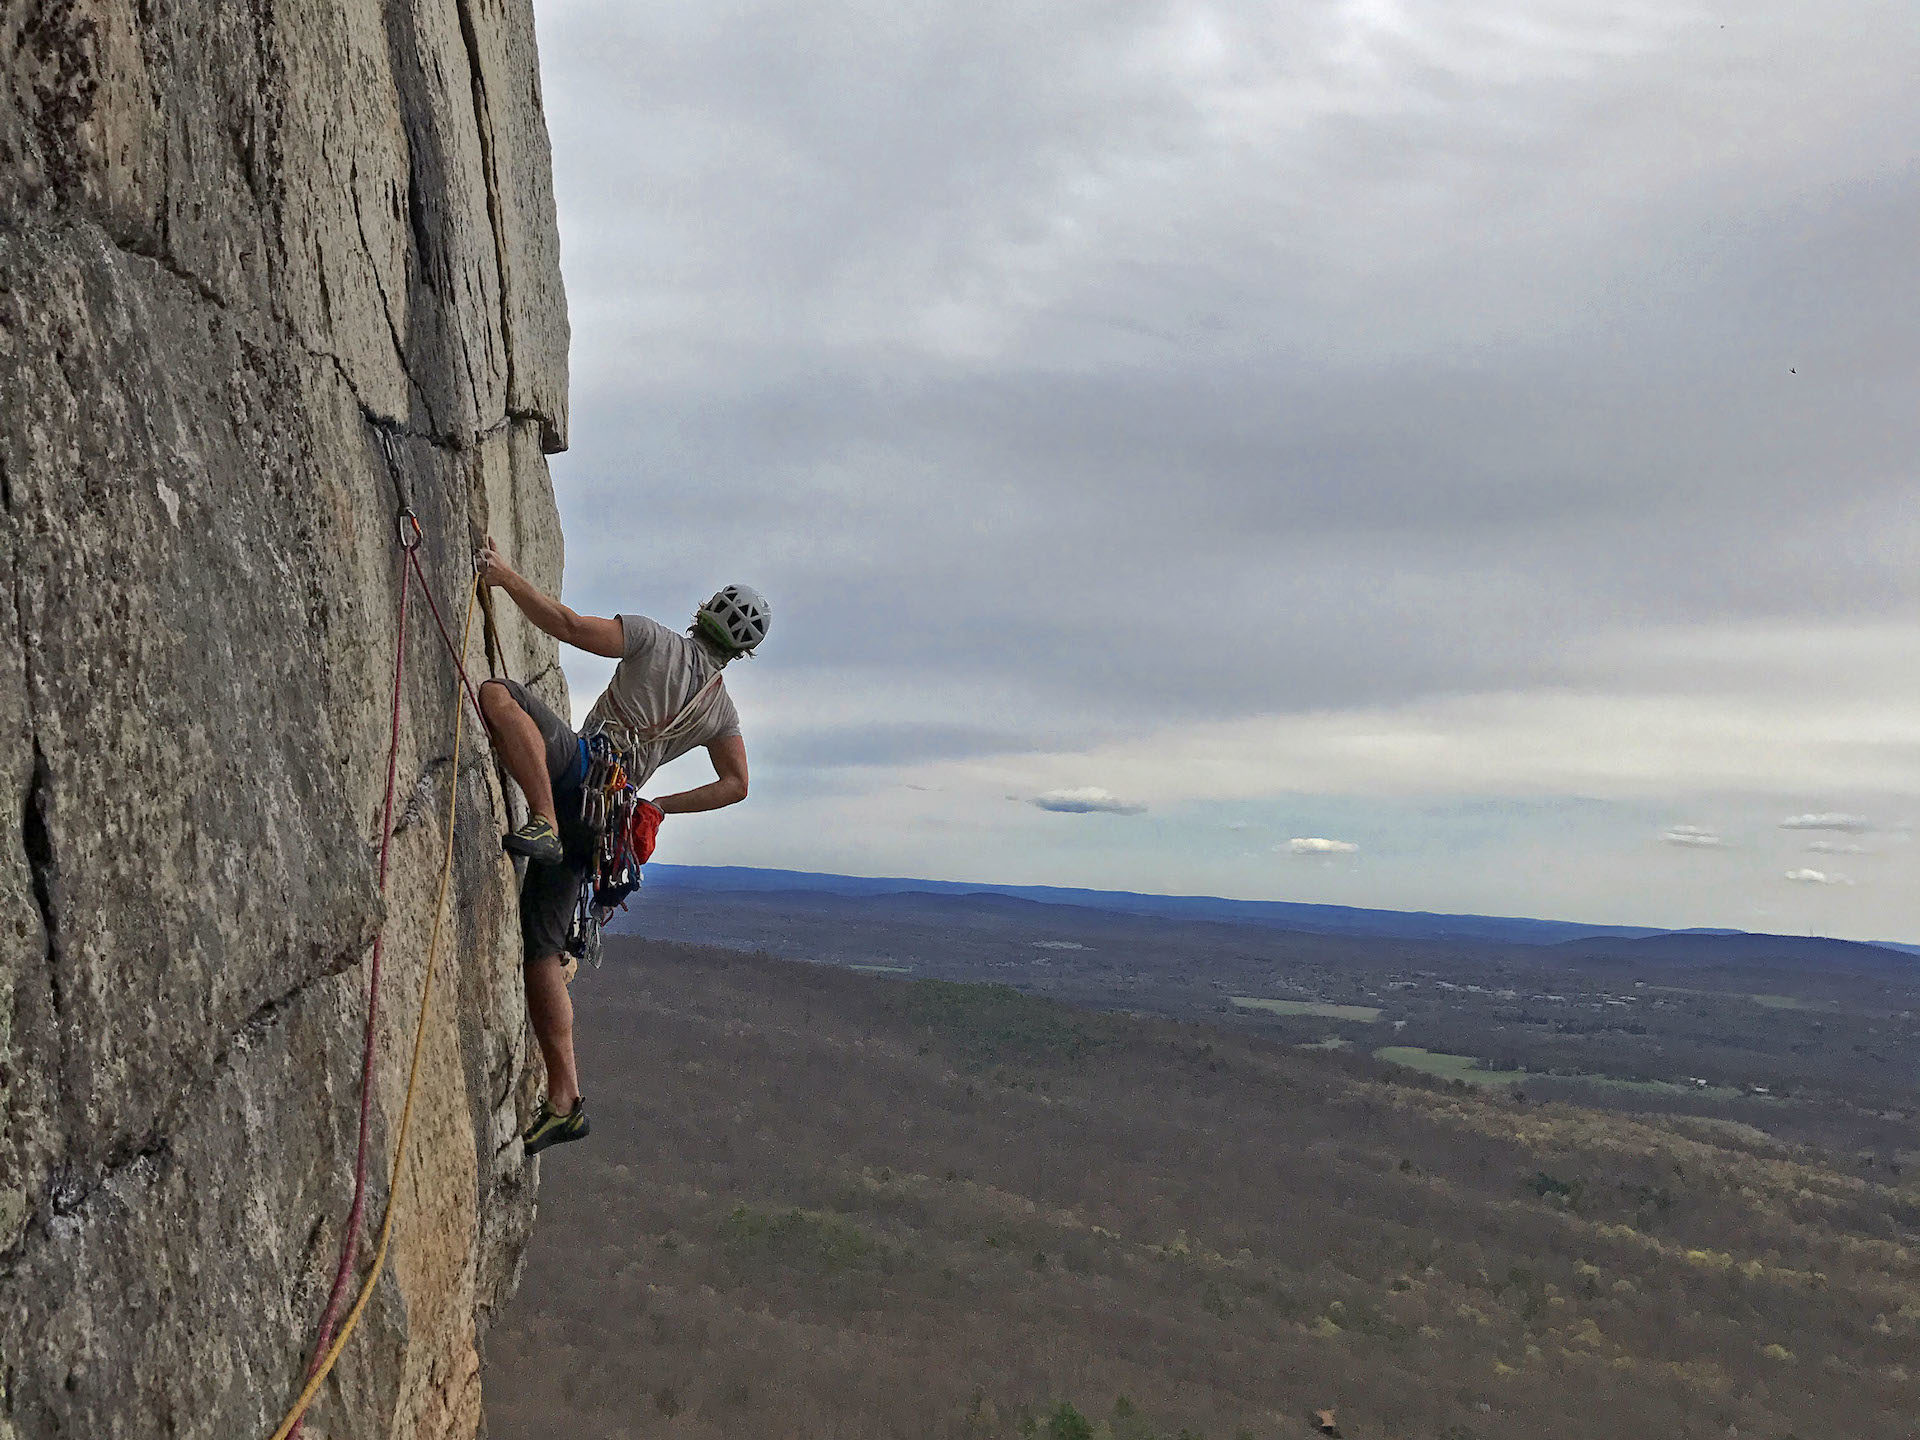 The Gunks offers picturesque views from its huge rock walls.